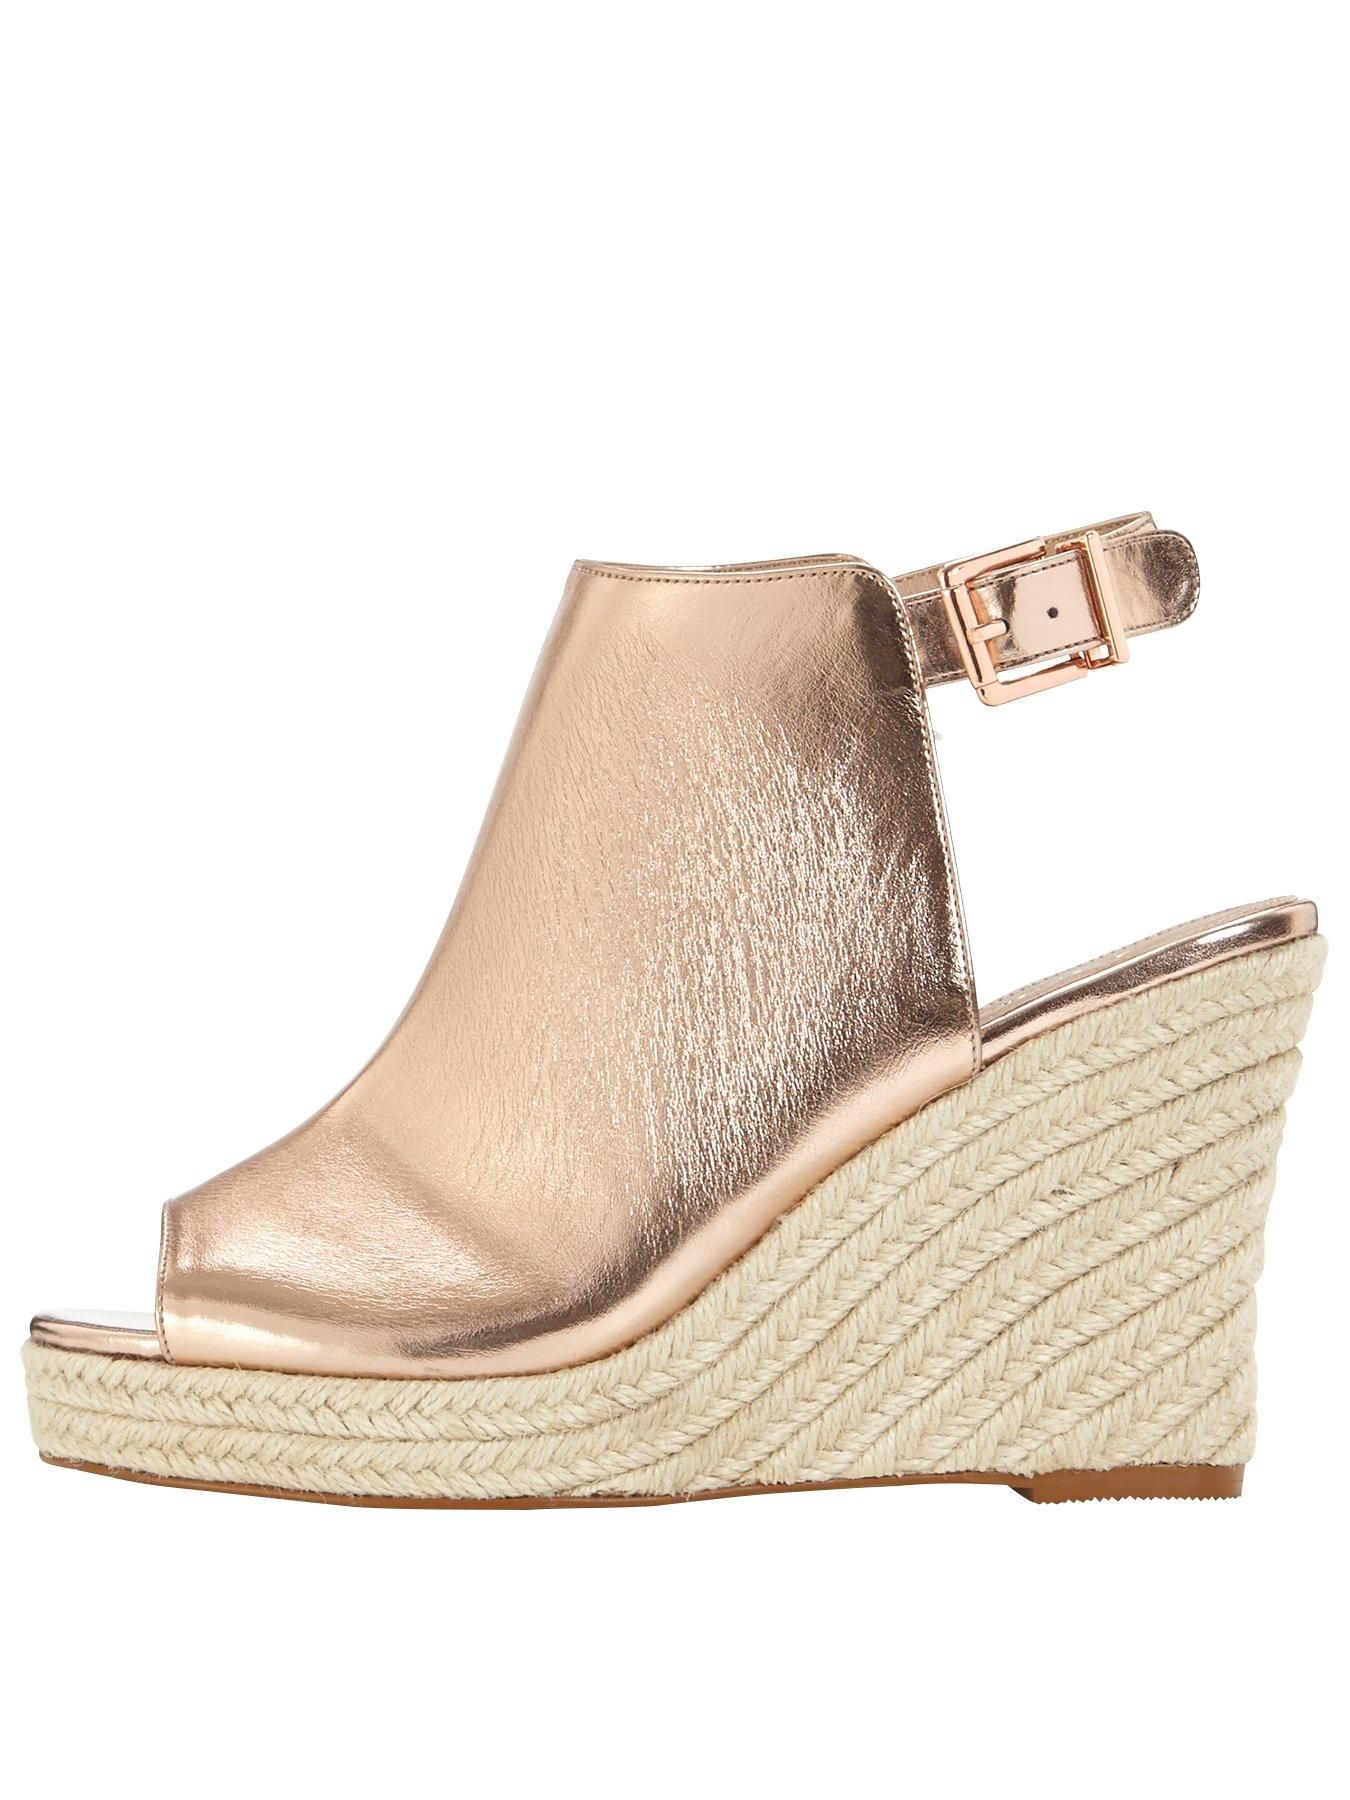 e2dde83772e V by Very Cloud Espadrille Wedge Sandal - Rose Gold These V by Very sandals  combine two of this season s top trends